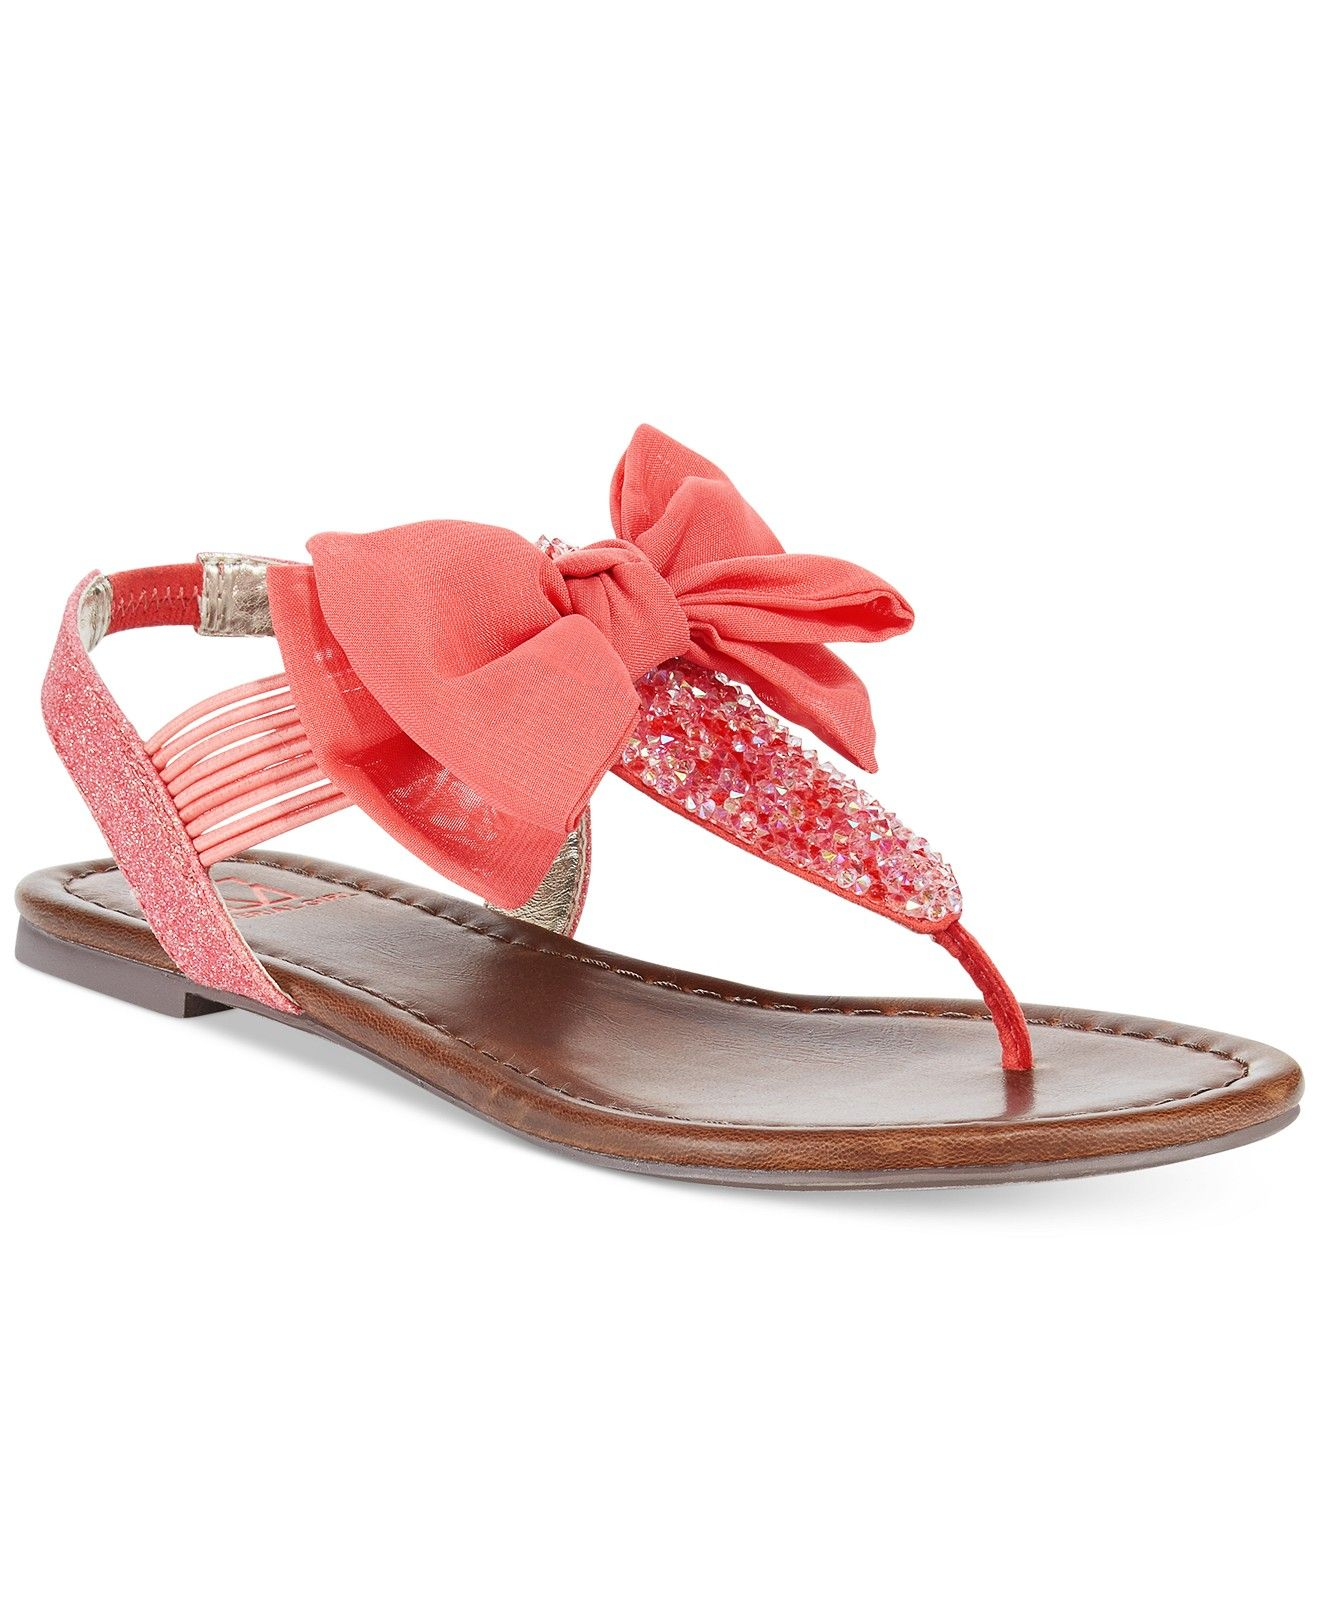 Sandals shoes sale - Material Girl Swan Flat Thong Sandals Sale Clearance Shoes Macy S